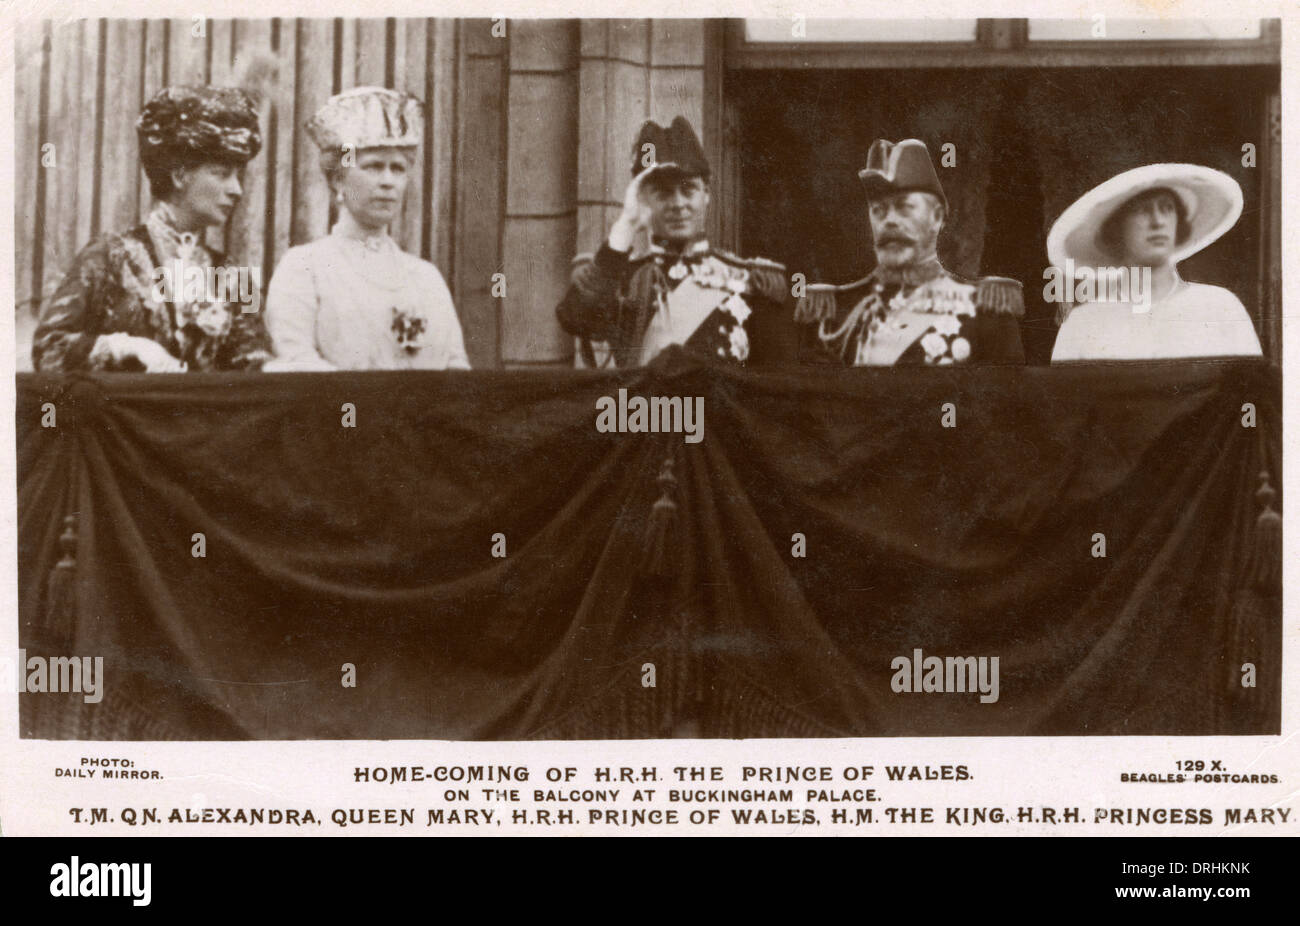 HRH Prince of Wales (future King Edward VIII) - home-coming - Stock Image